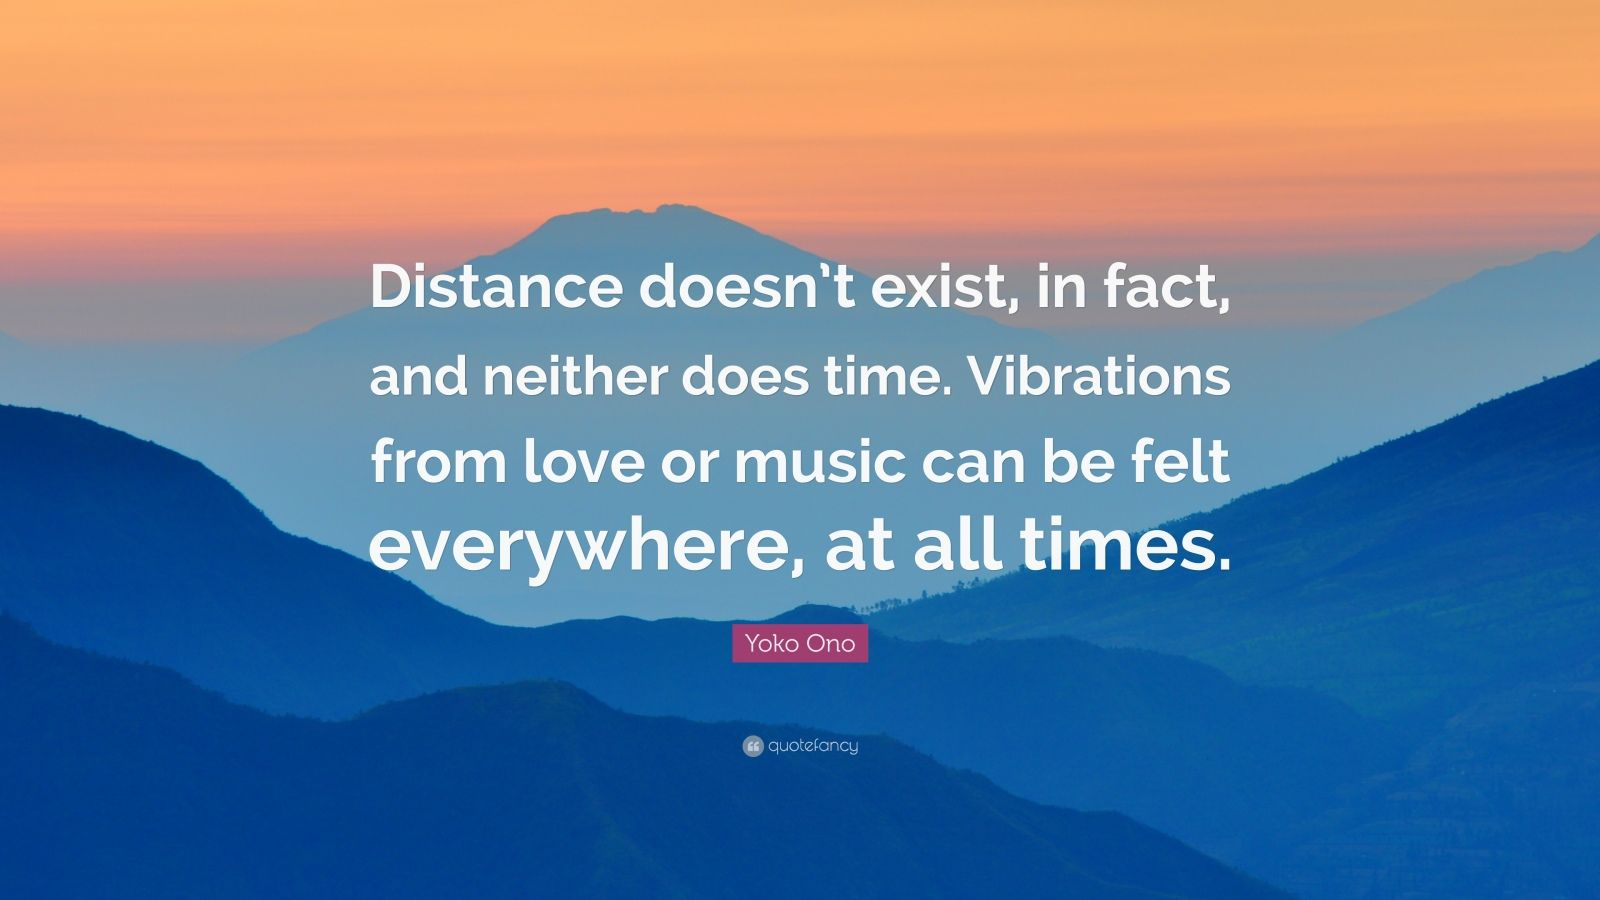 """Yoko Ono Quote: """"Distance doesn't exist, in fact, and neither does time. Vibrations from love or music can be felt everywhere, at all times."""""""